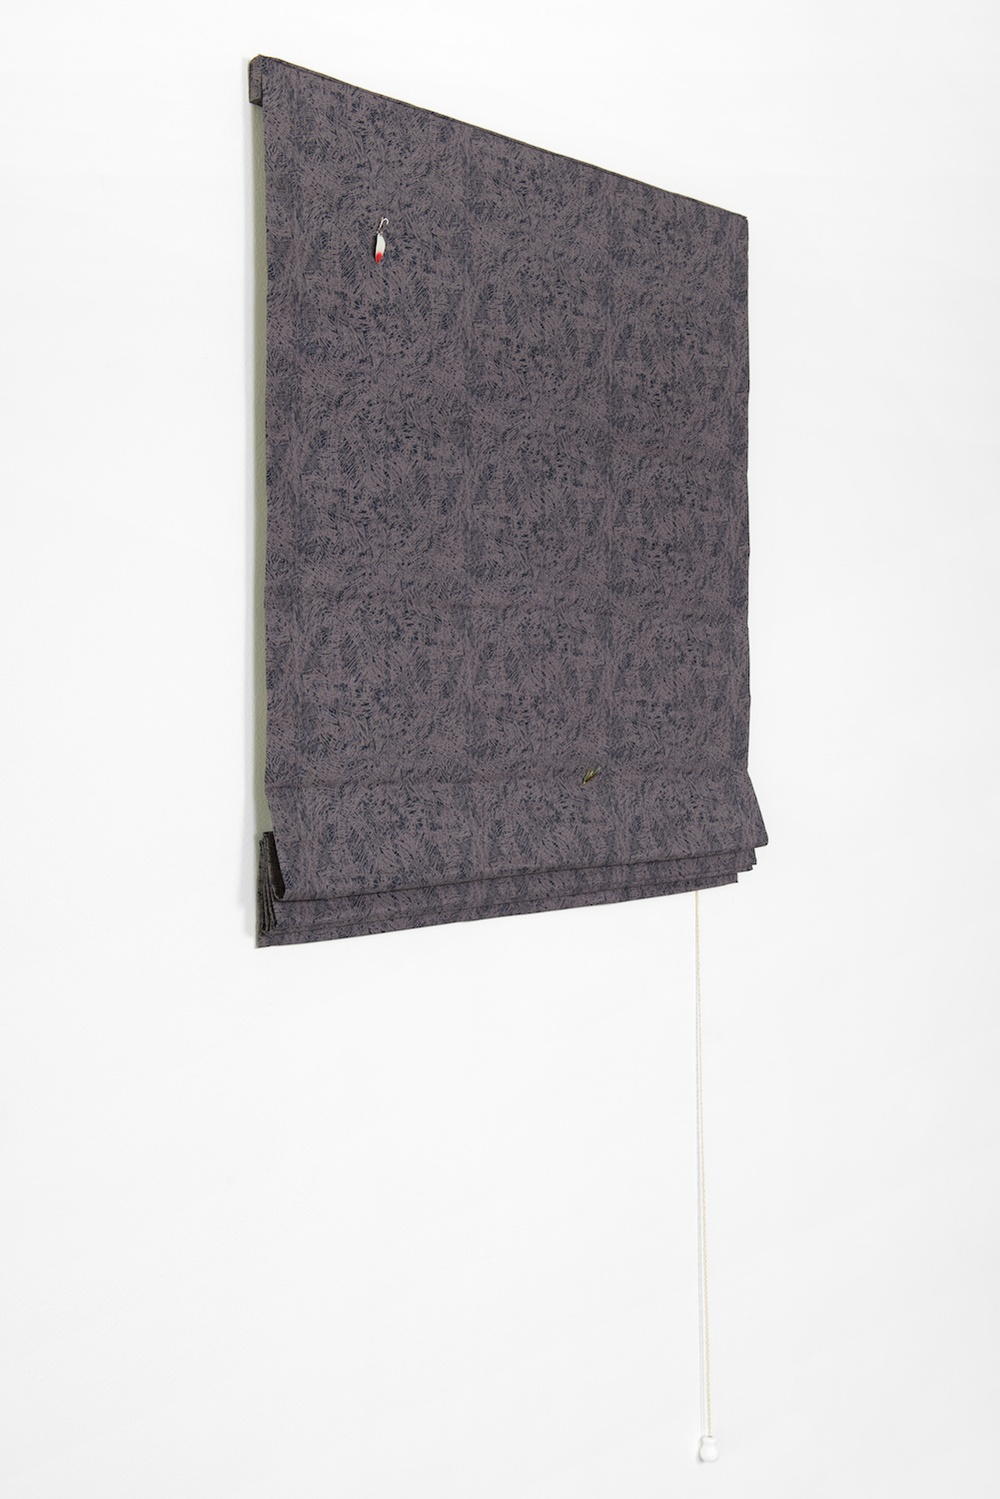 "Paul Cowan Untitled 2013 Fabric, lures, hardware 66"" x 32""  PC060"